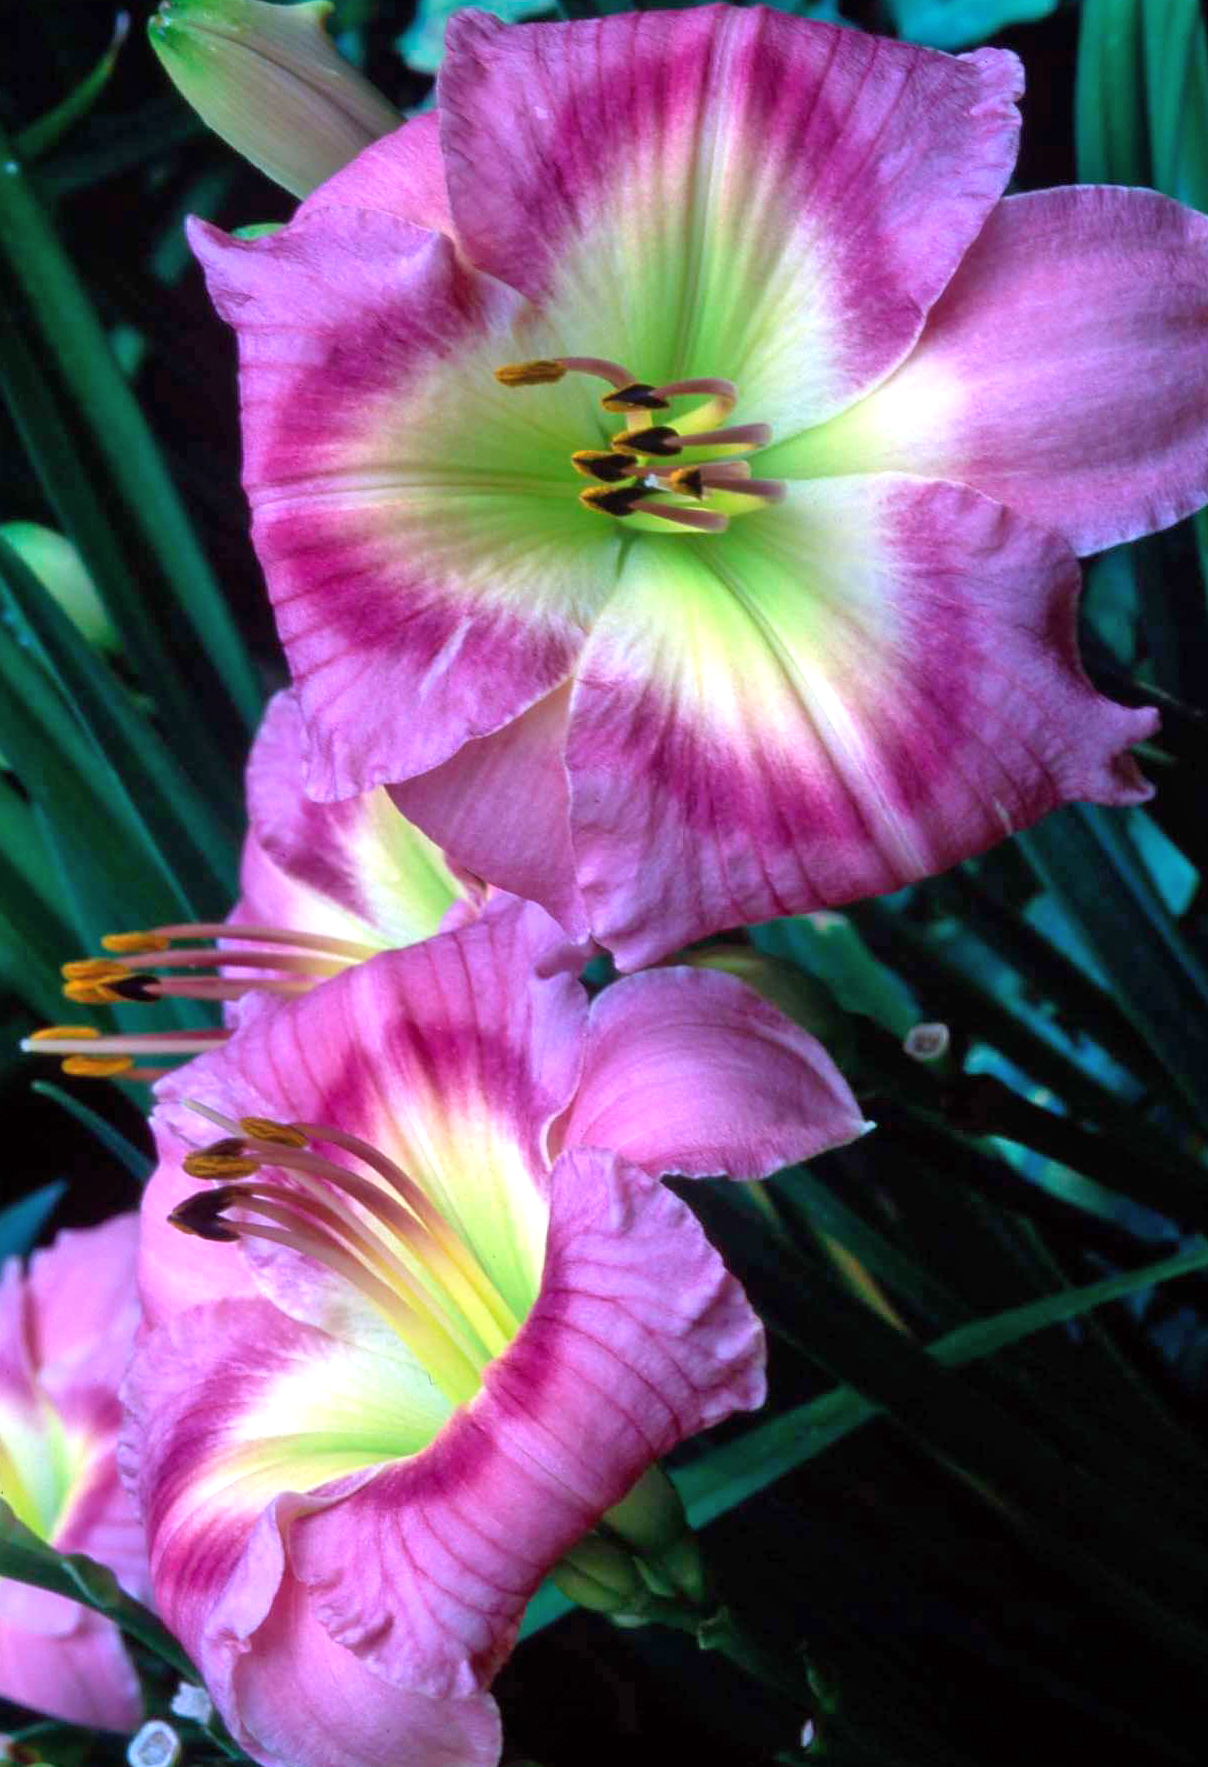 green, yellow, pink ombre daylily